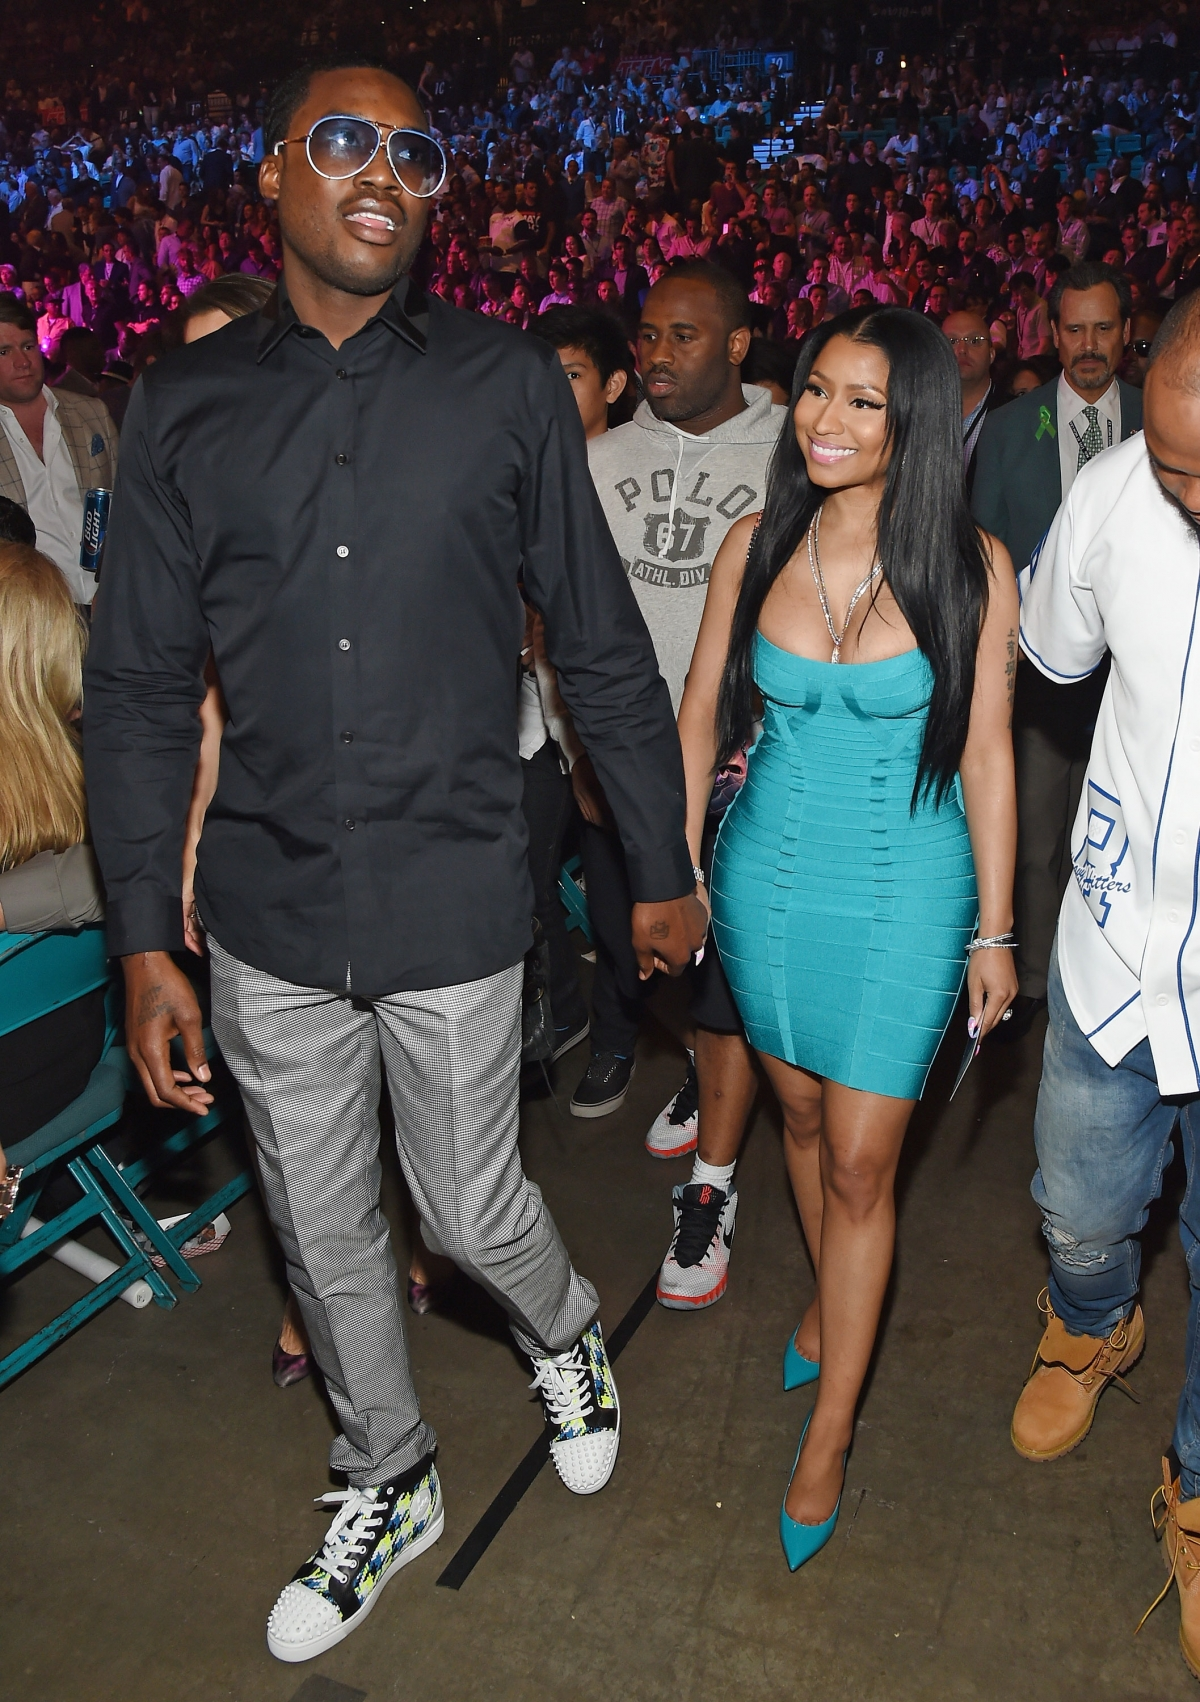 Meek Mills and Nicki Minaj